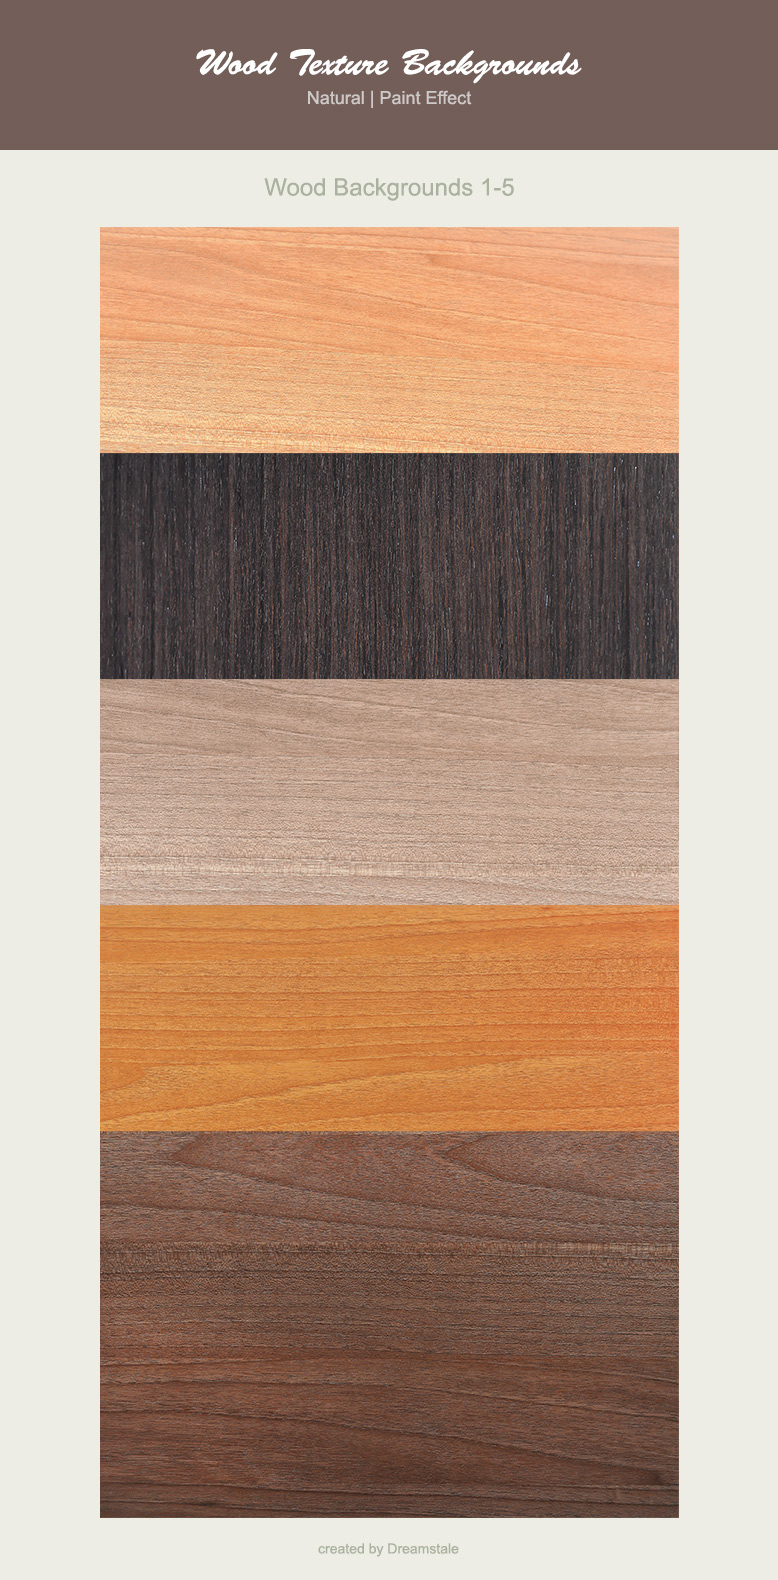 wood texture pattern backgrounds 1-5